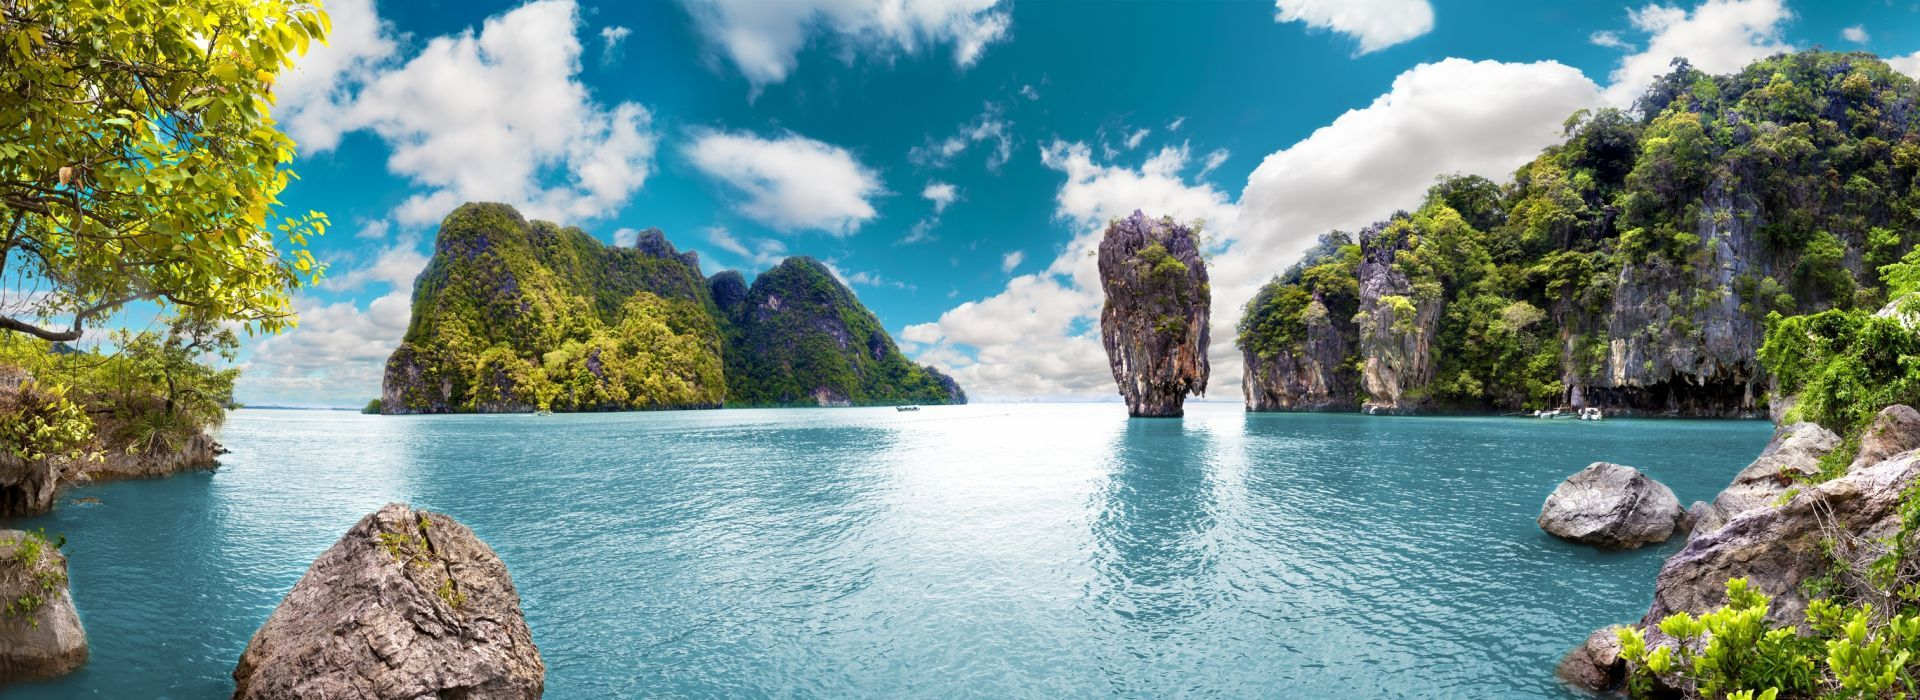 Wildlife, landscapes and nature Tours in Koh Phangan